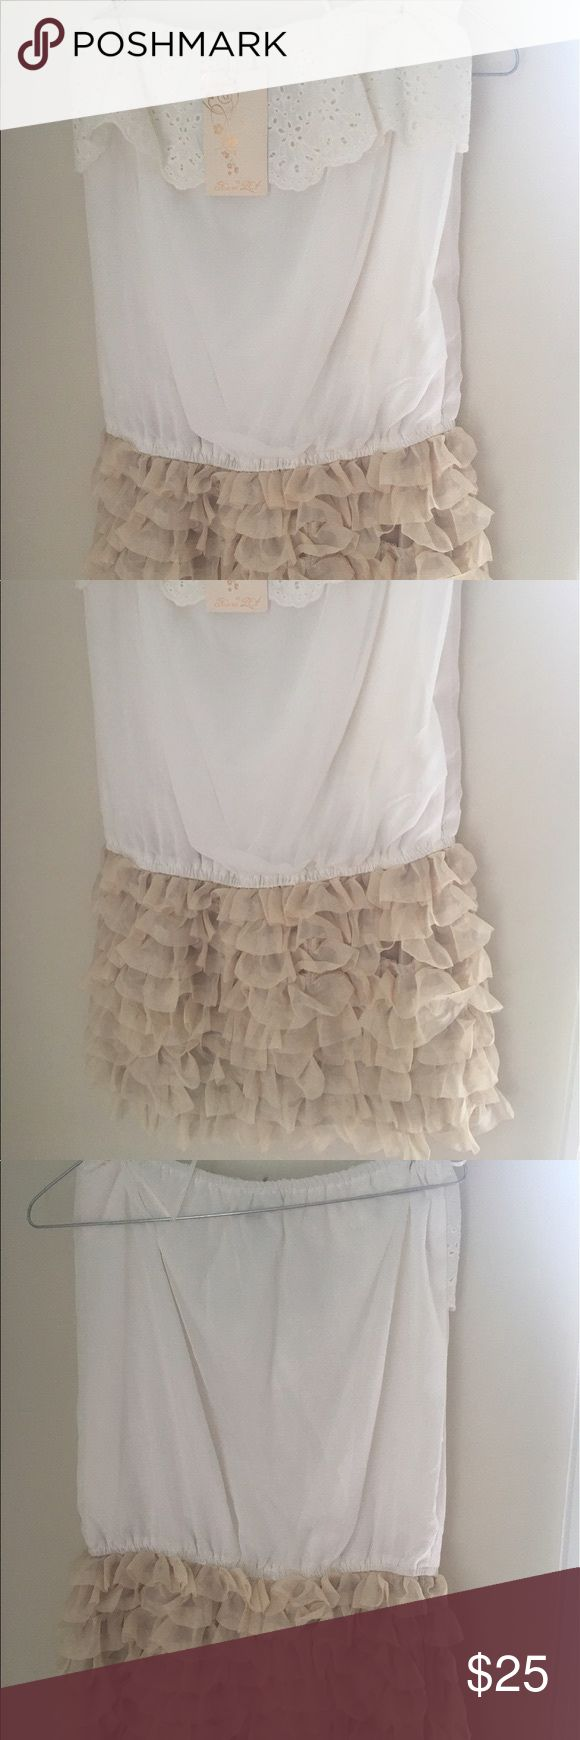 """🌹Princess LEA ivory ruffle dress🌹 Brand new with tags. no since of wear and no rips or stains. 100% polyester. Top to hem is 24"""" Dresses Midi"""